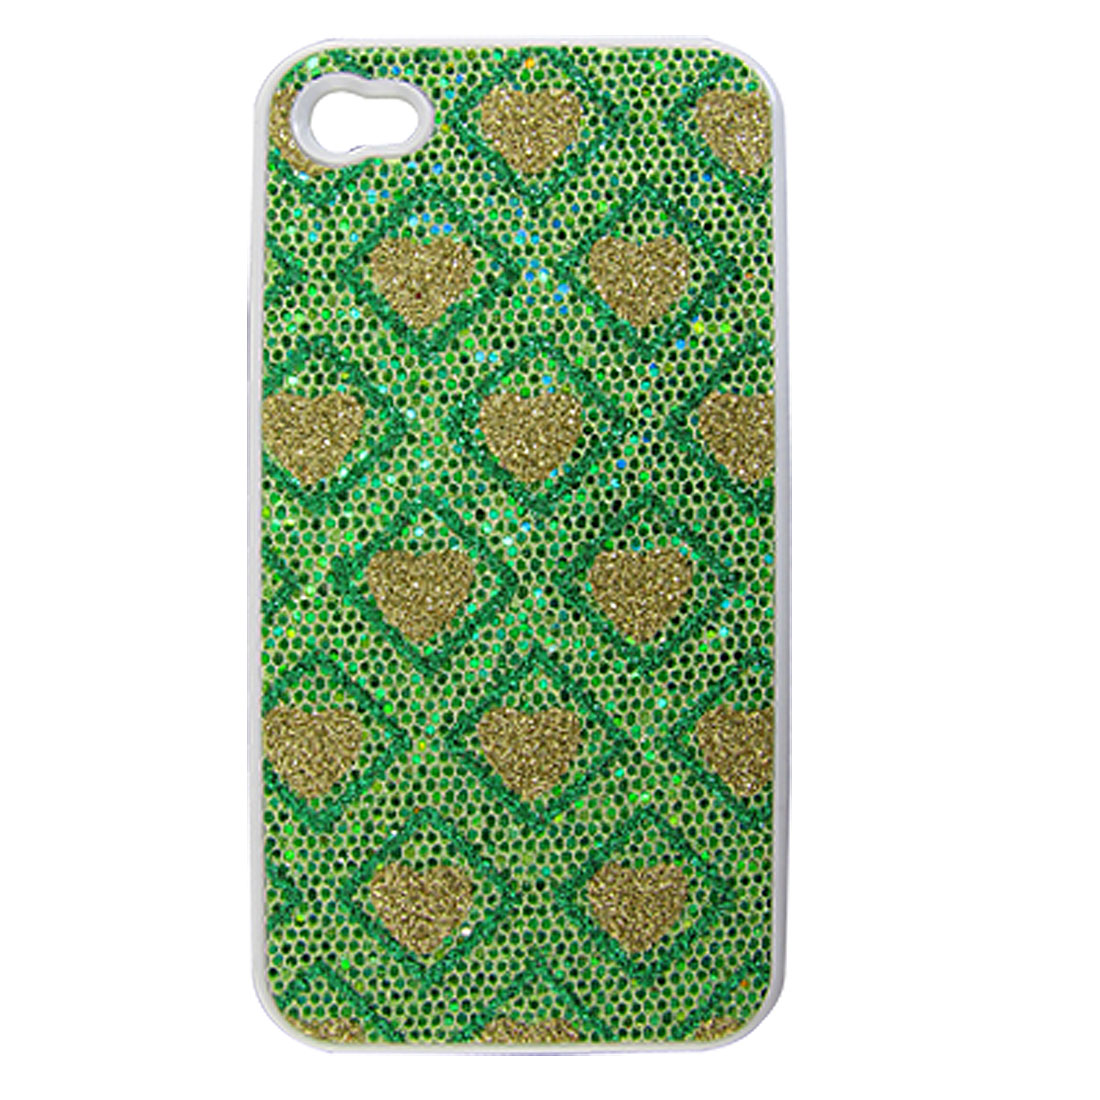 Green Gold Tone Shiny Heart Square Hard Plastic Back Case Cover for iPhone 4 4S 4G